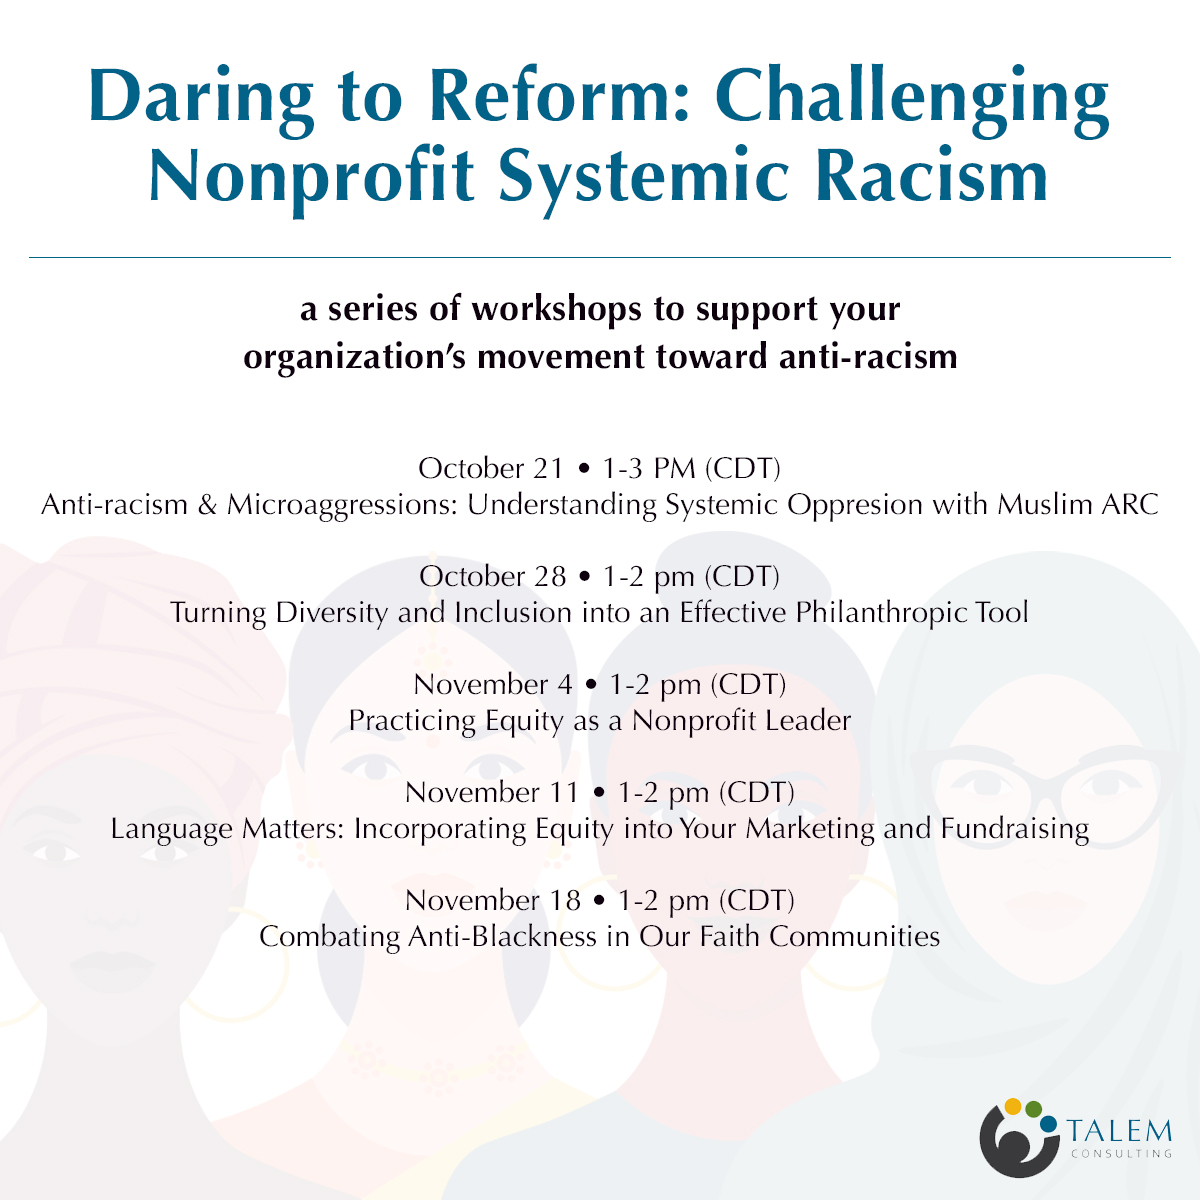 Daring to Reform